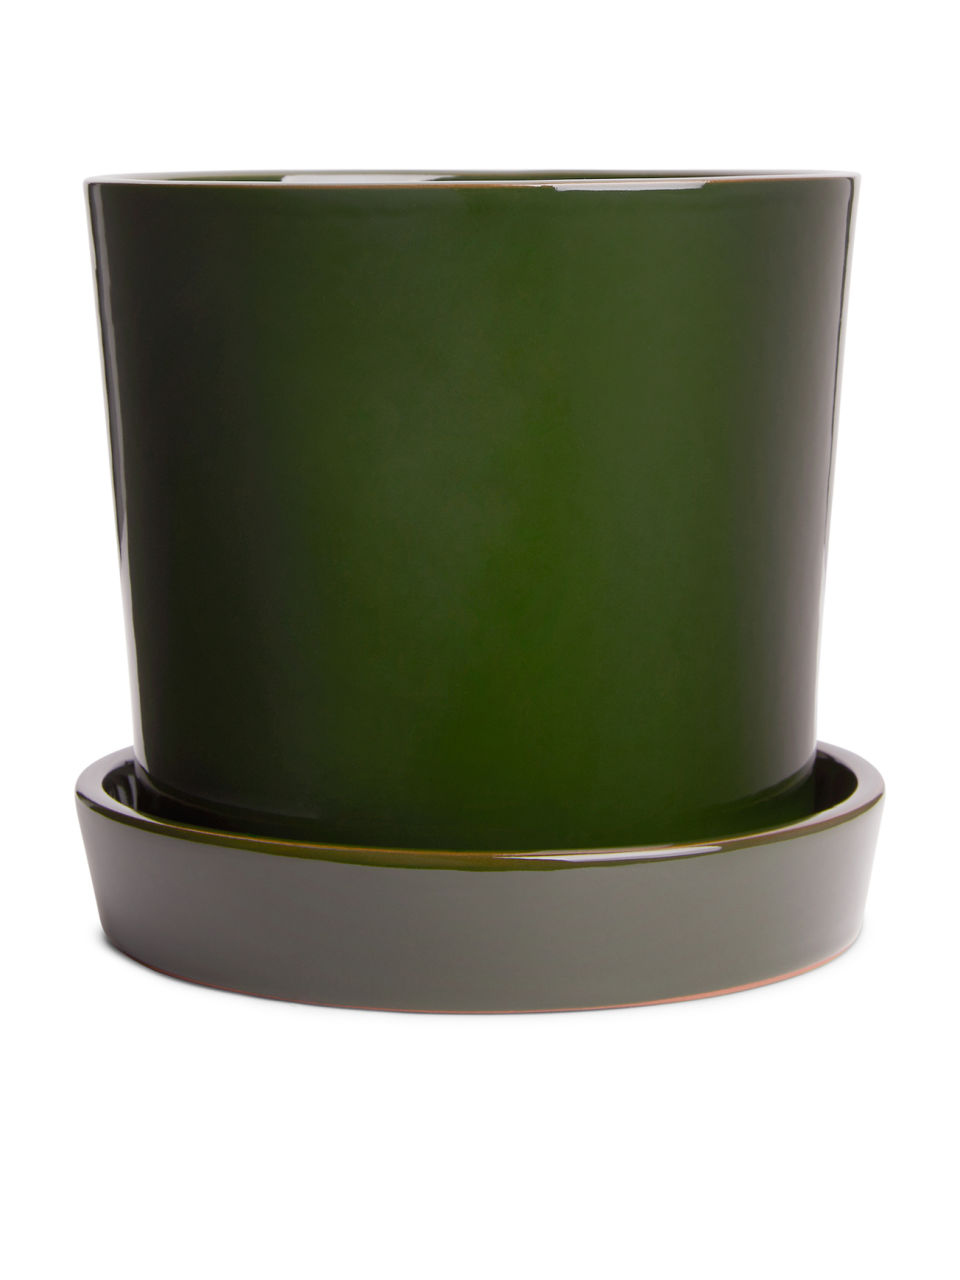 Side image of Arket terracotta flower pot, large in green